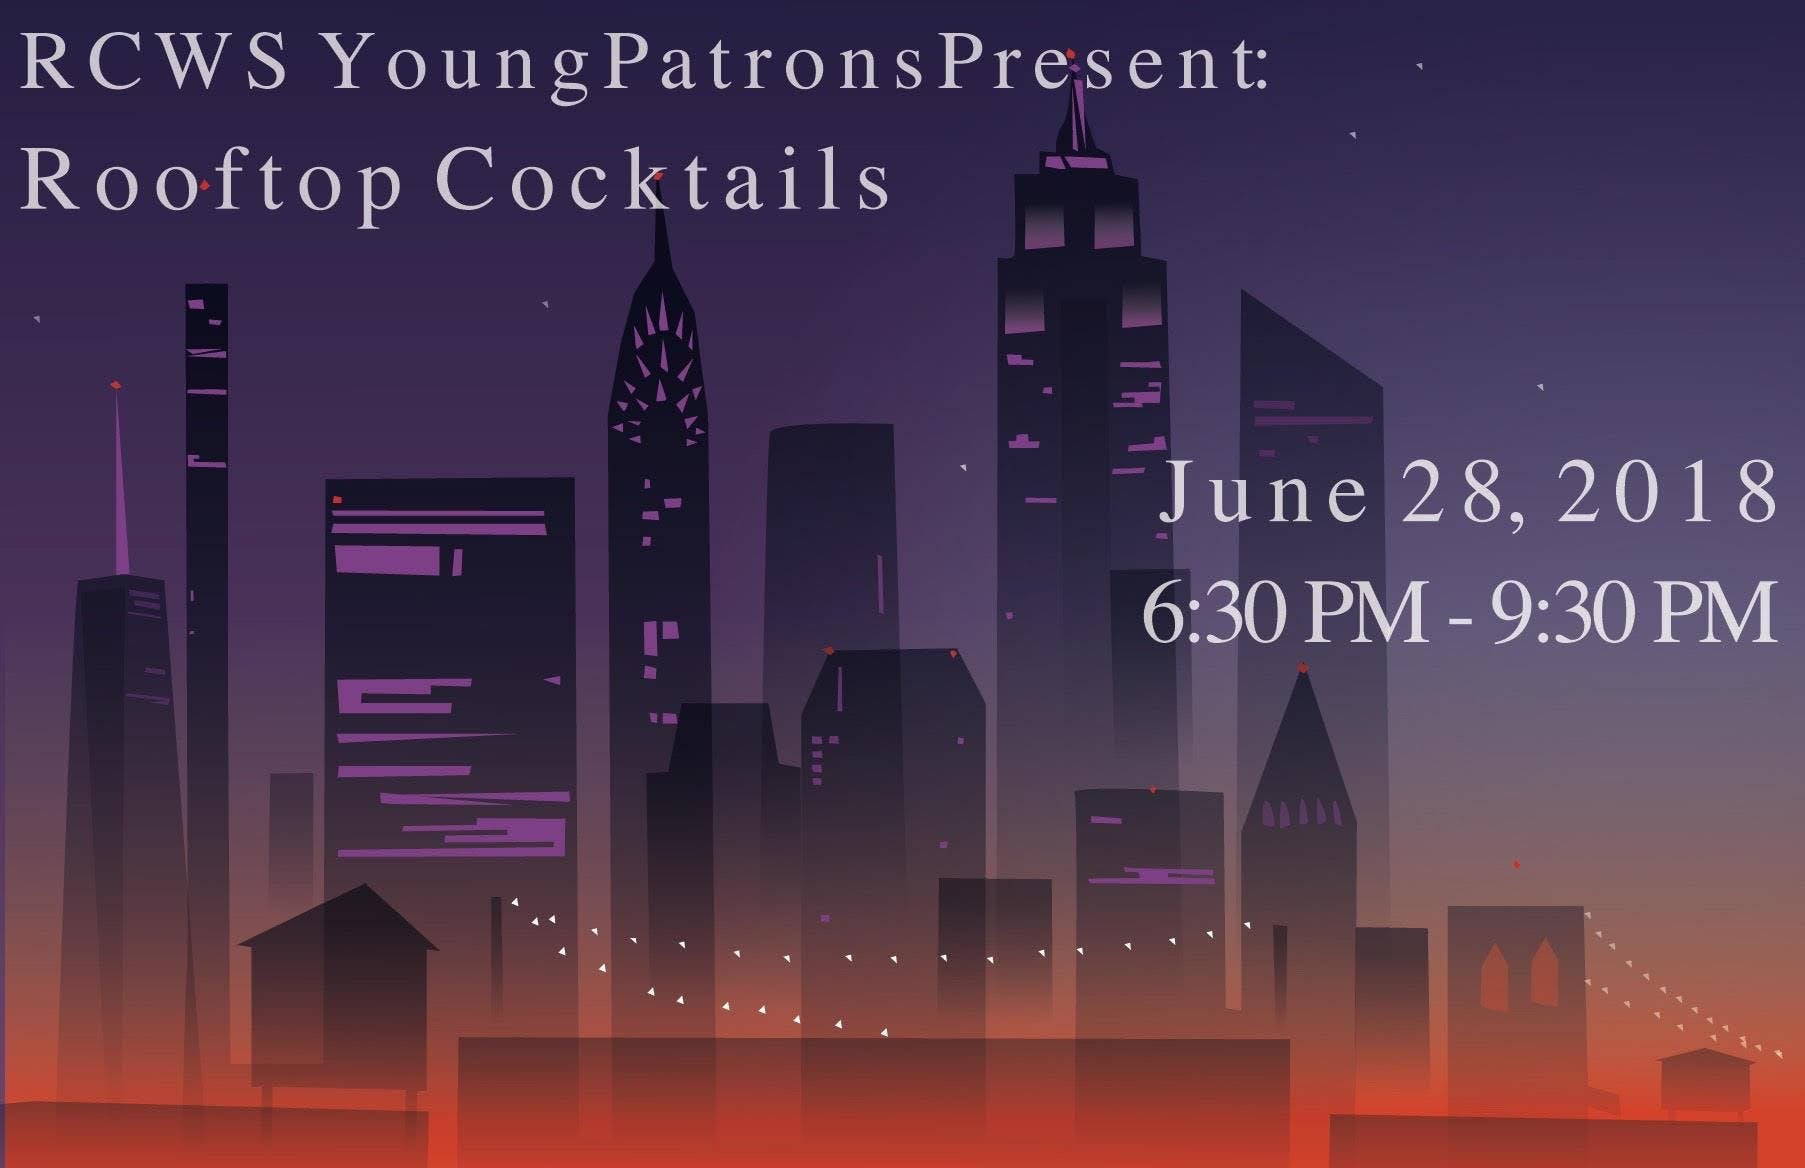 RCWS Young Patrons Russian Rooftop Cocktail Party